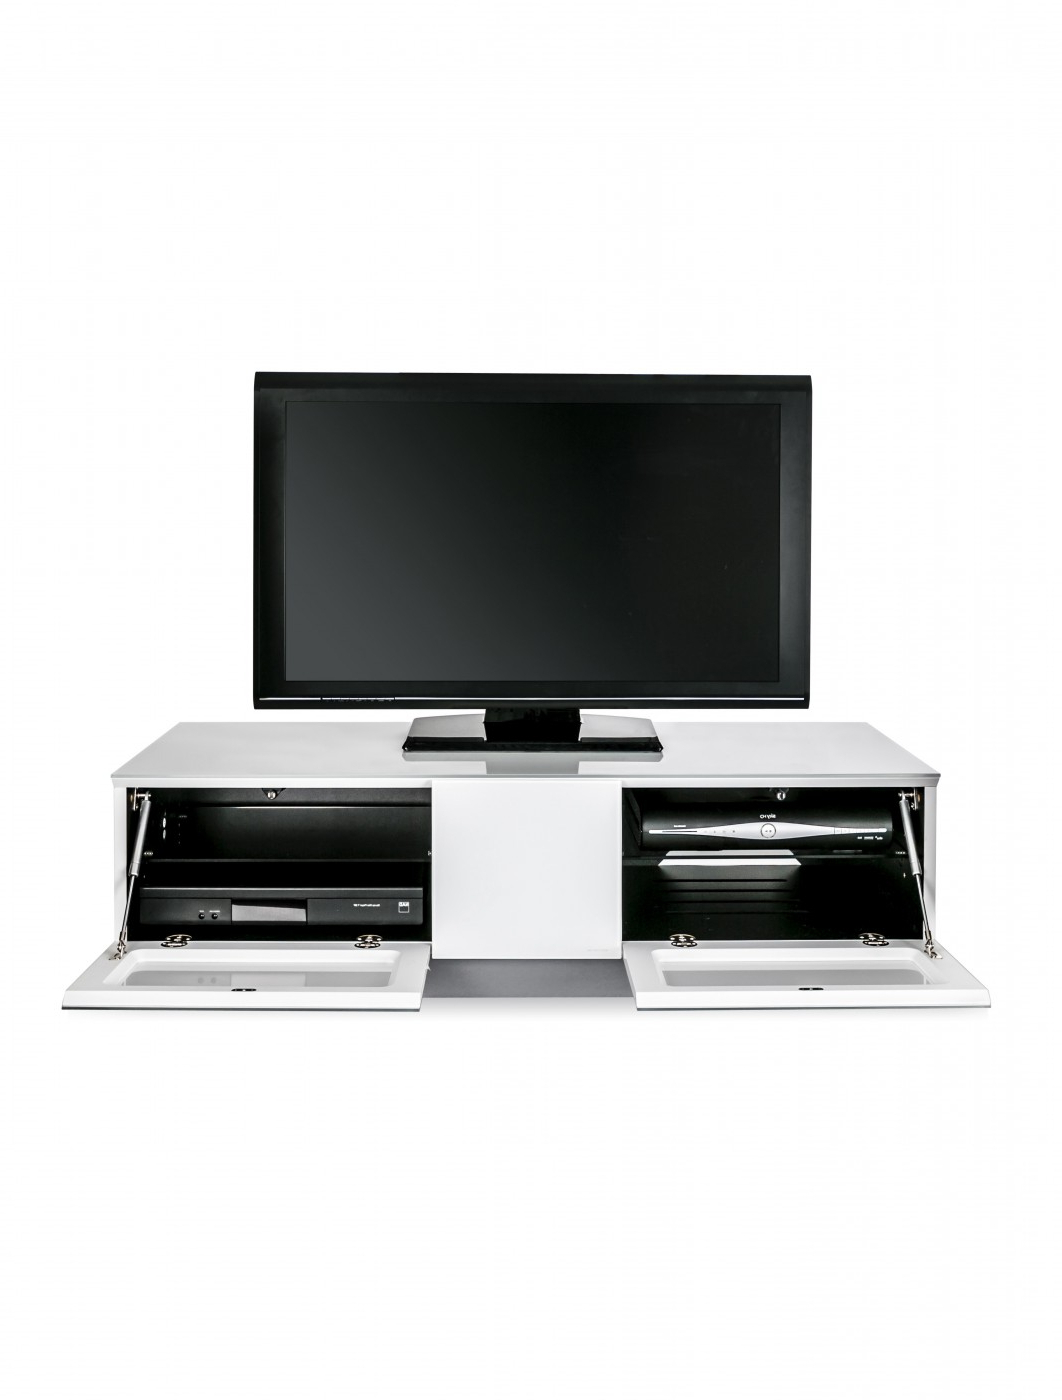 Tv Stand Element Modular Emtmod1250 Whi Tv Cabinet Intended For 57'' Tv Stands With Open Glass Shelves Gray & Black Finsh (View 11 of 20)